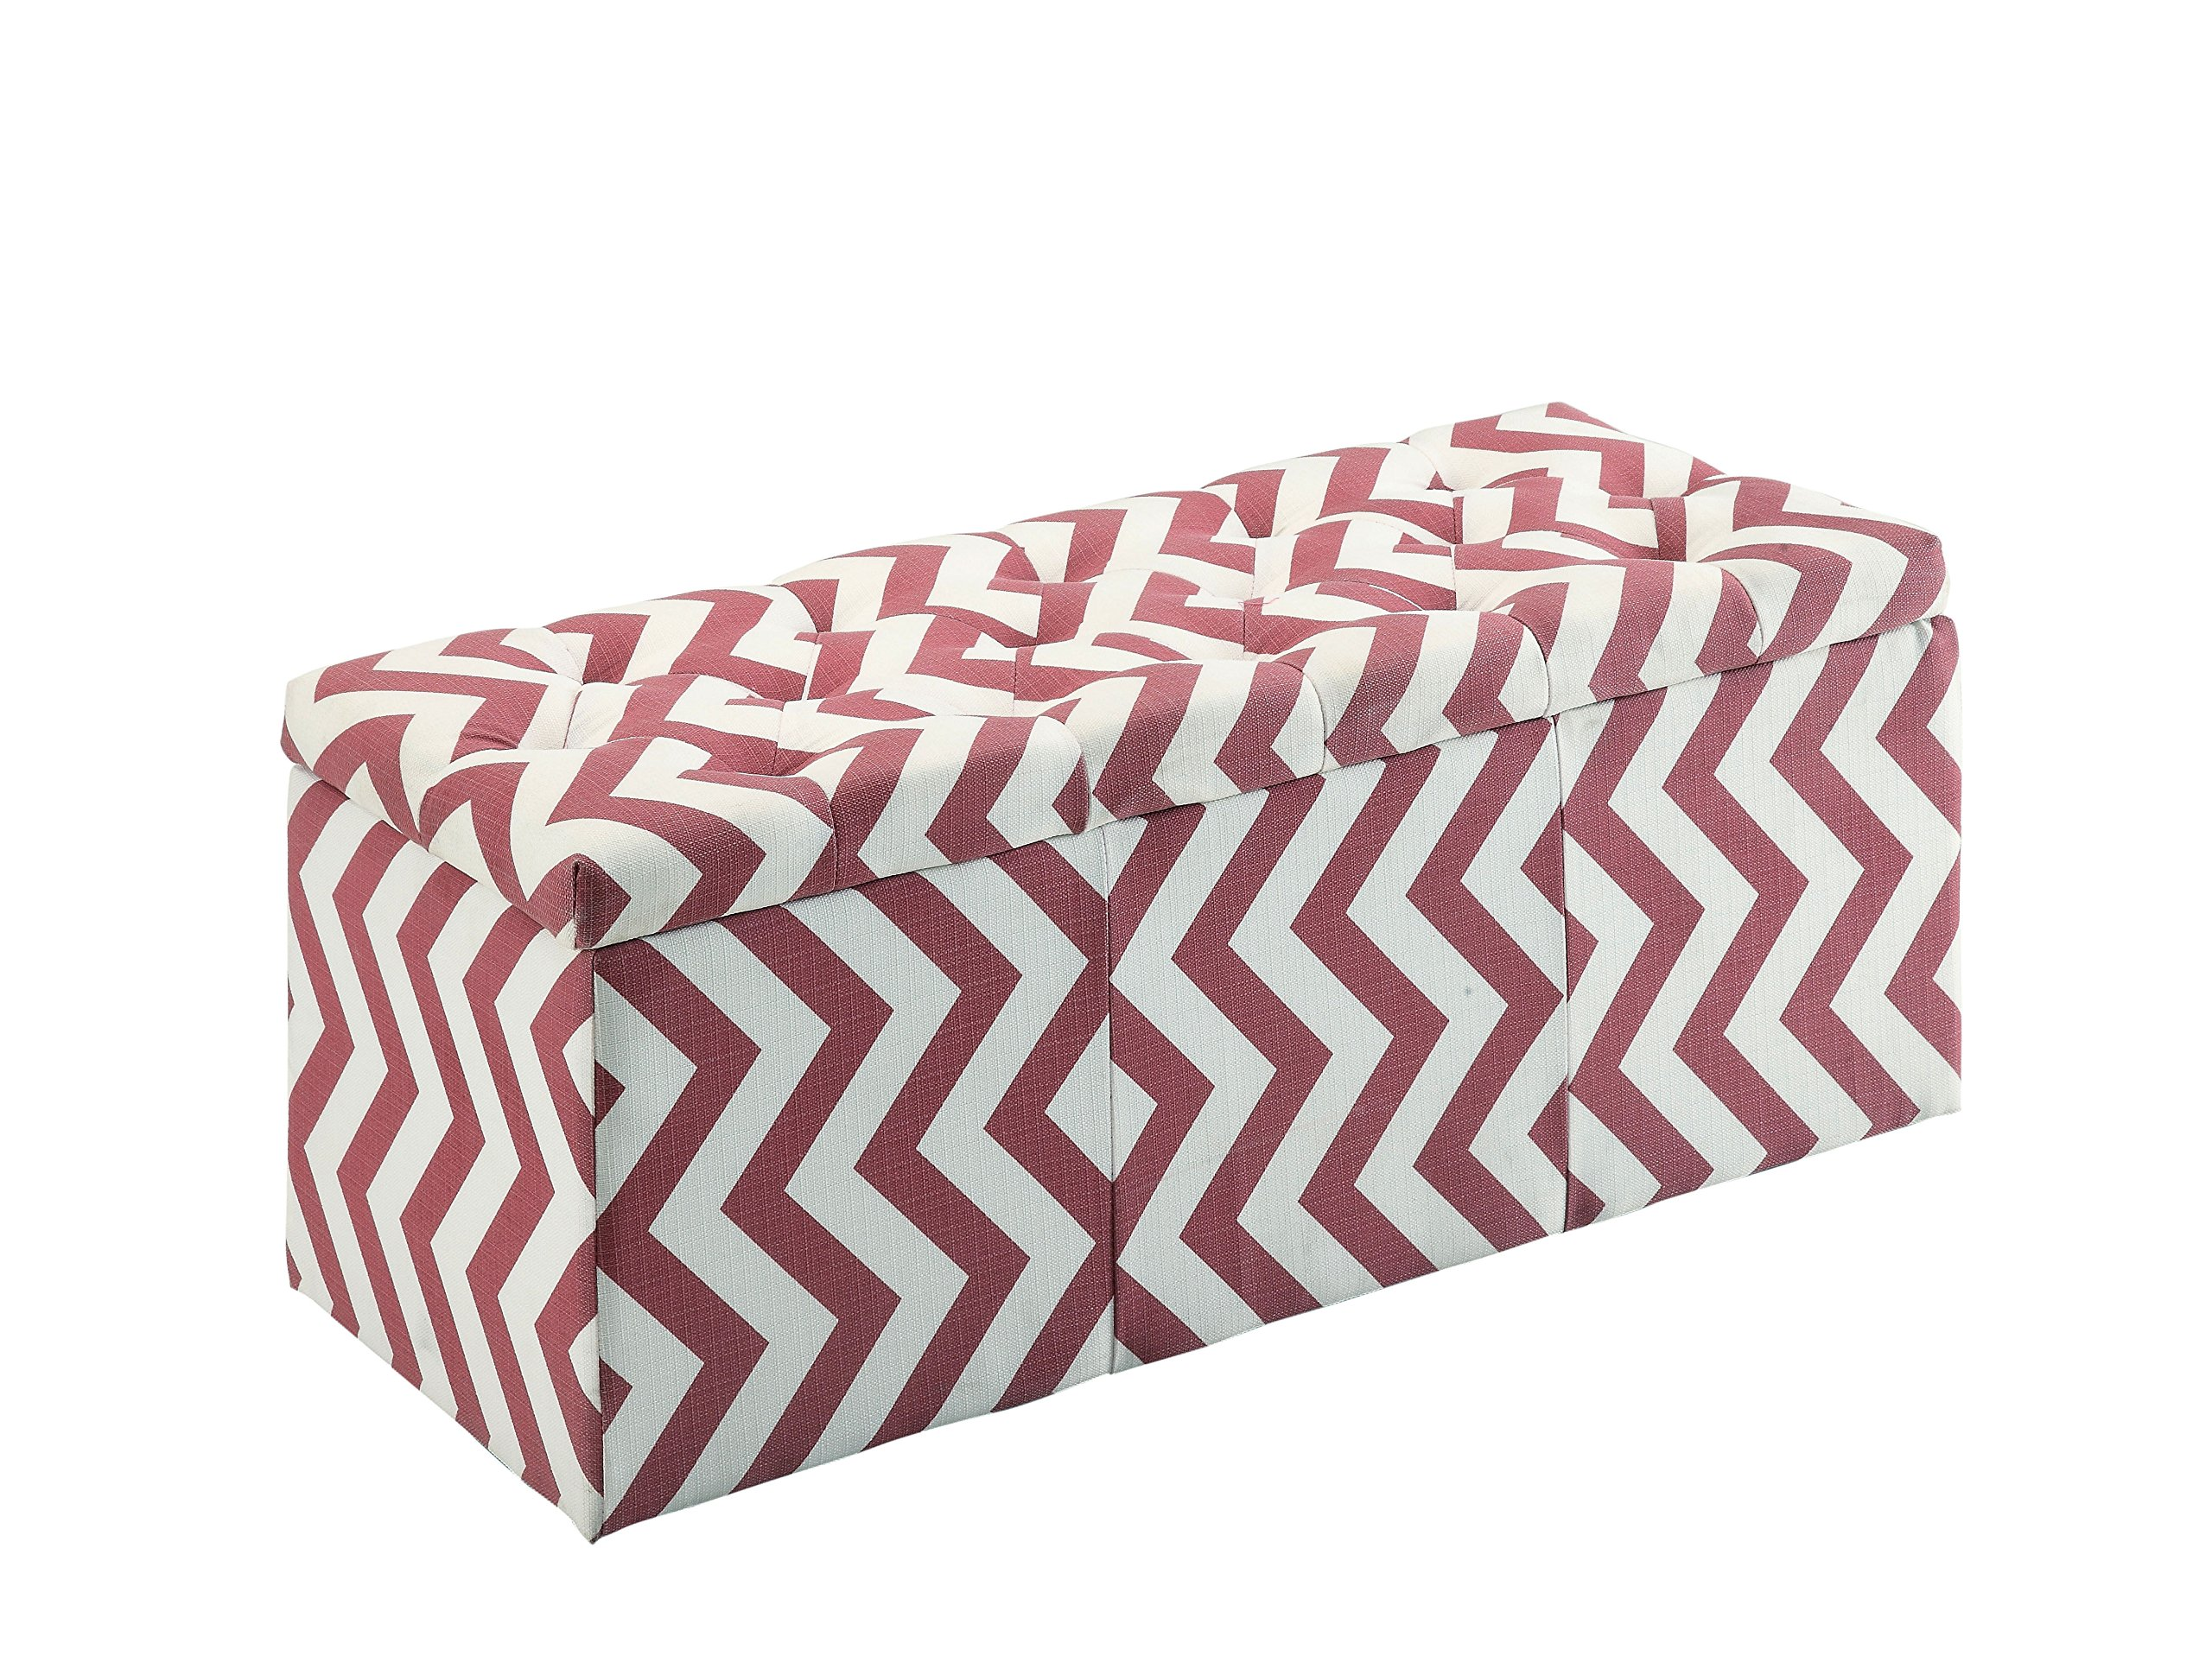 HOMES: Inside + Out IDF-BN6031RD Willy Chevron Storage Ottoman, Red